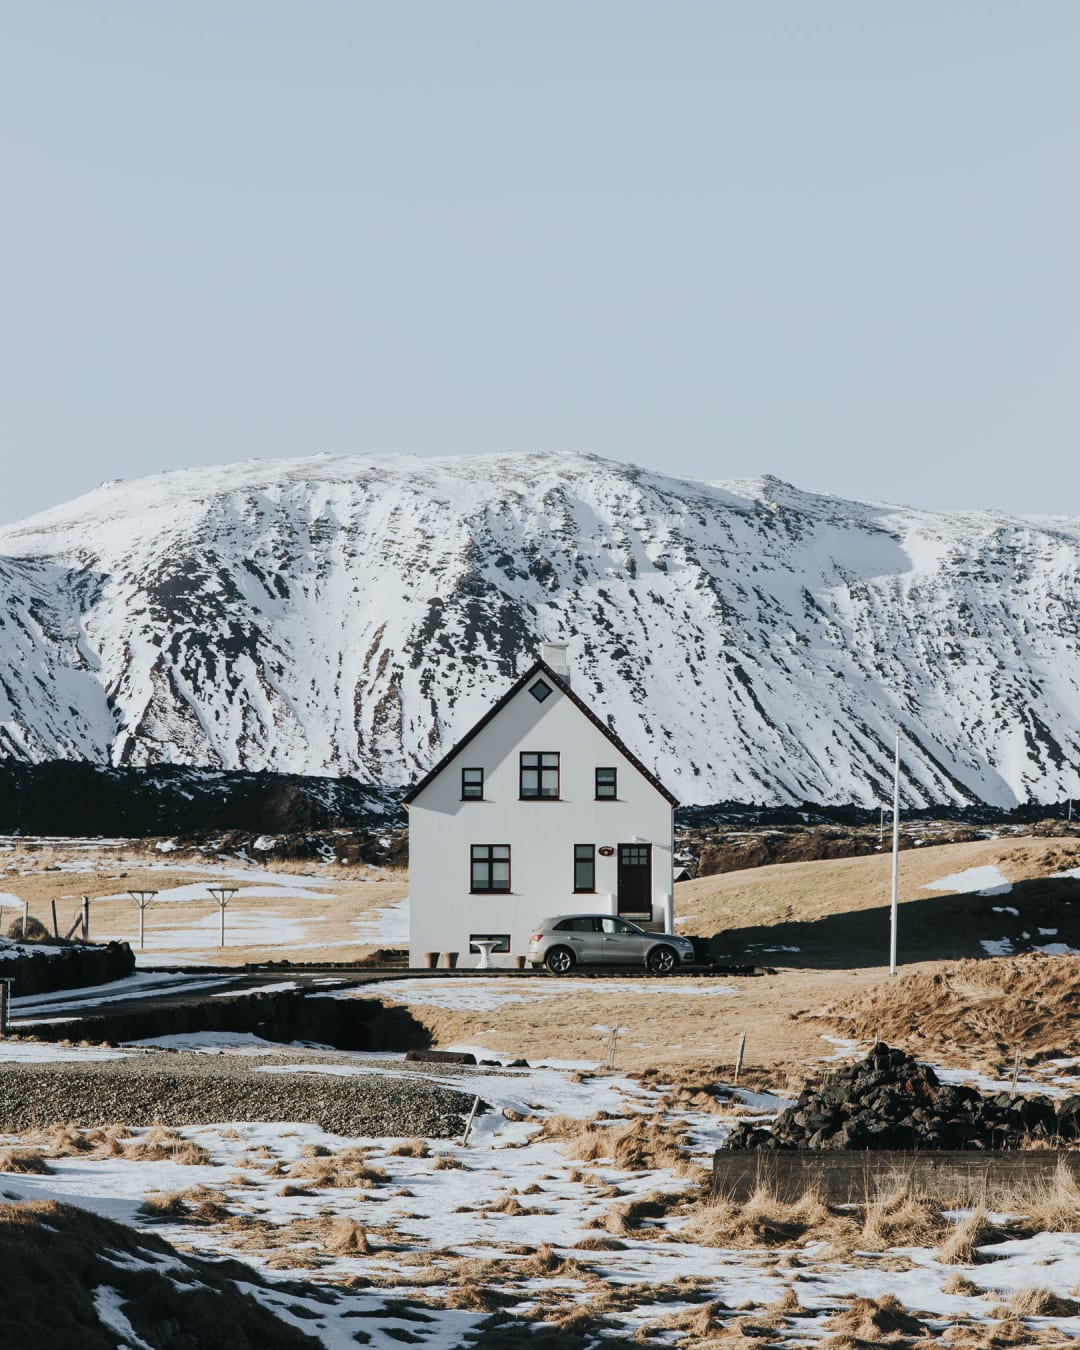 minimal house and car in front of snowy mountain landscape photography of Iceland